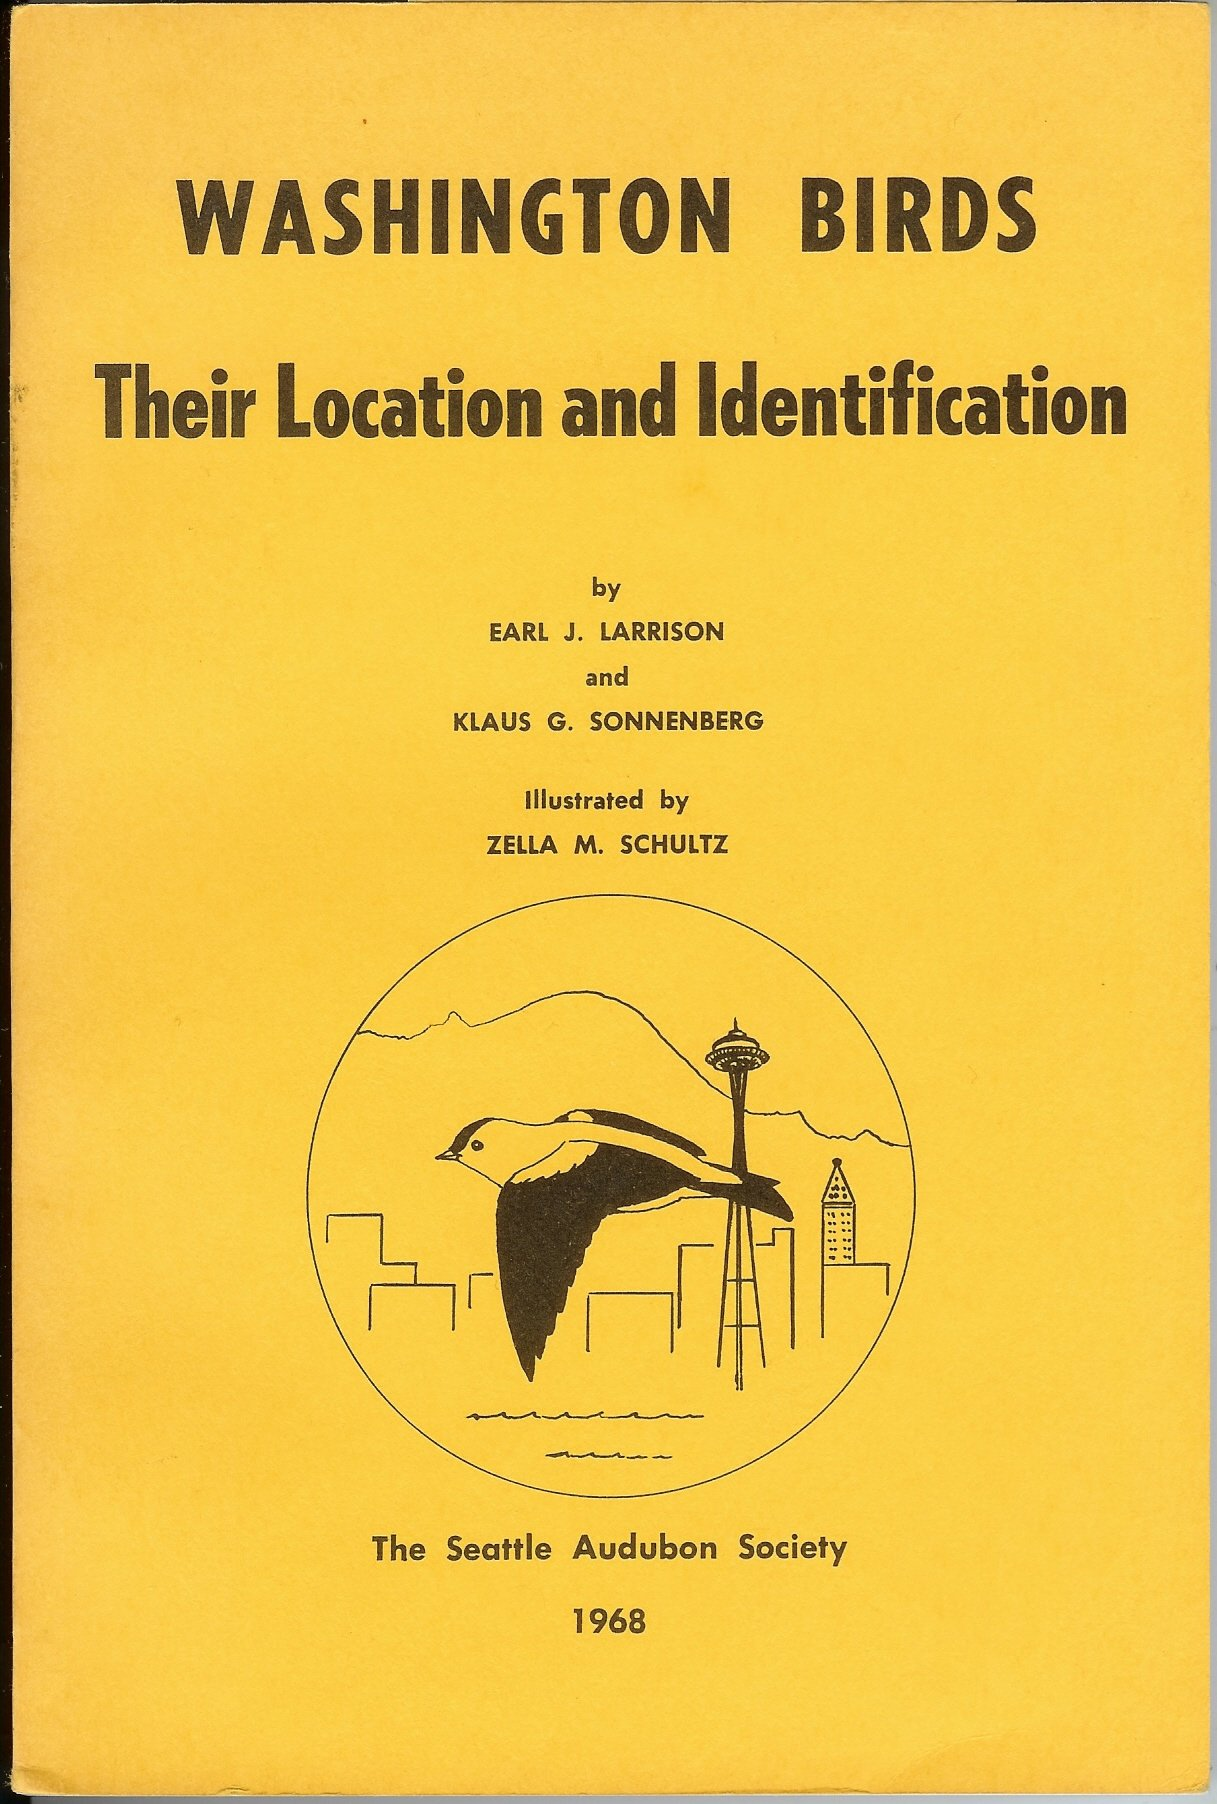 Washington Birds Their Location and Identification, Earl J. Larrison and Klaus G. Sonnenberg